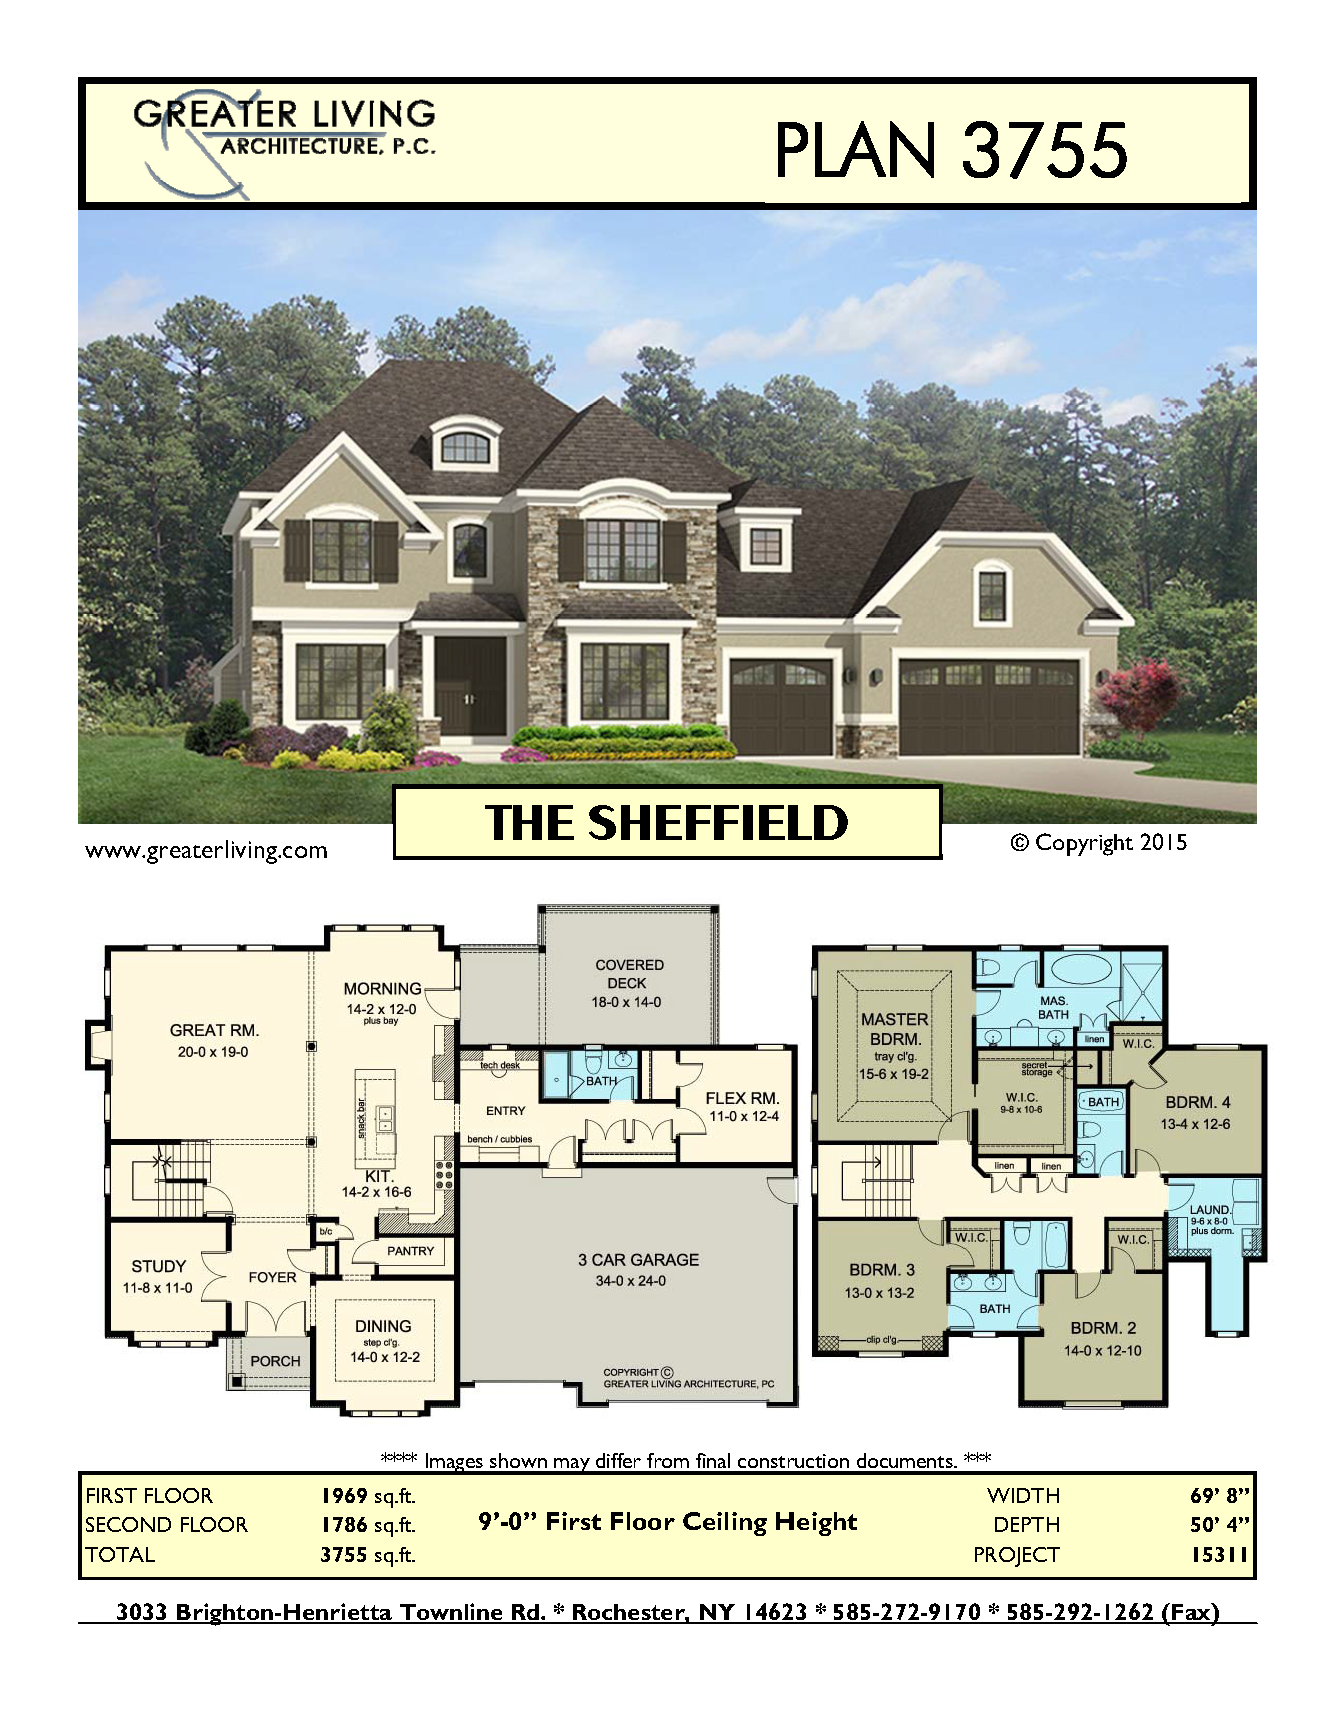 plan 3755 the sheffield house plans 2 story house plan plan 3755 the sheffield house plans 2 story house plan greater living